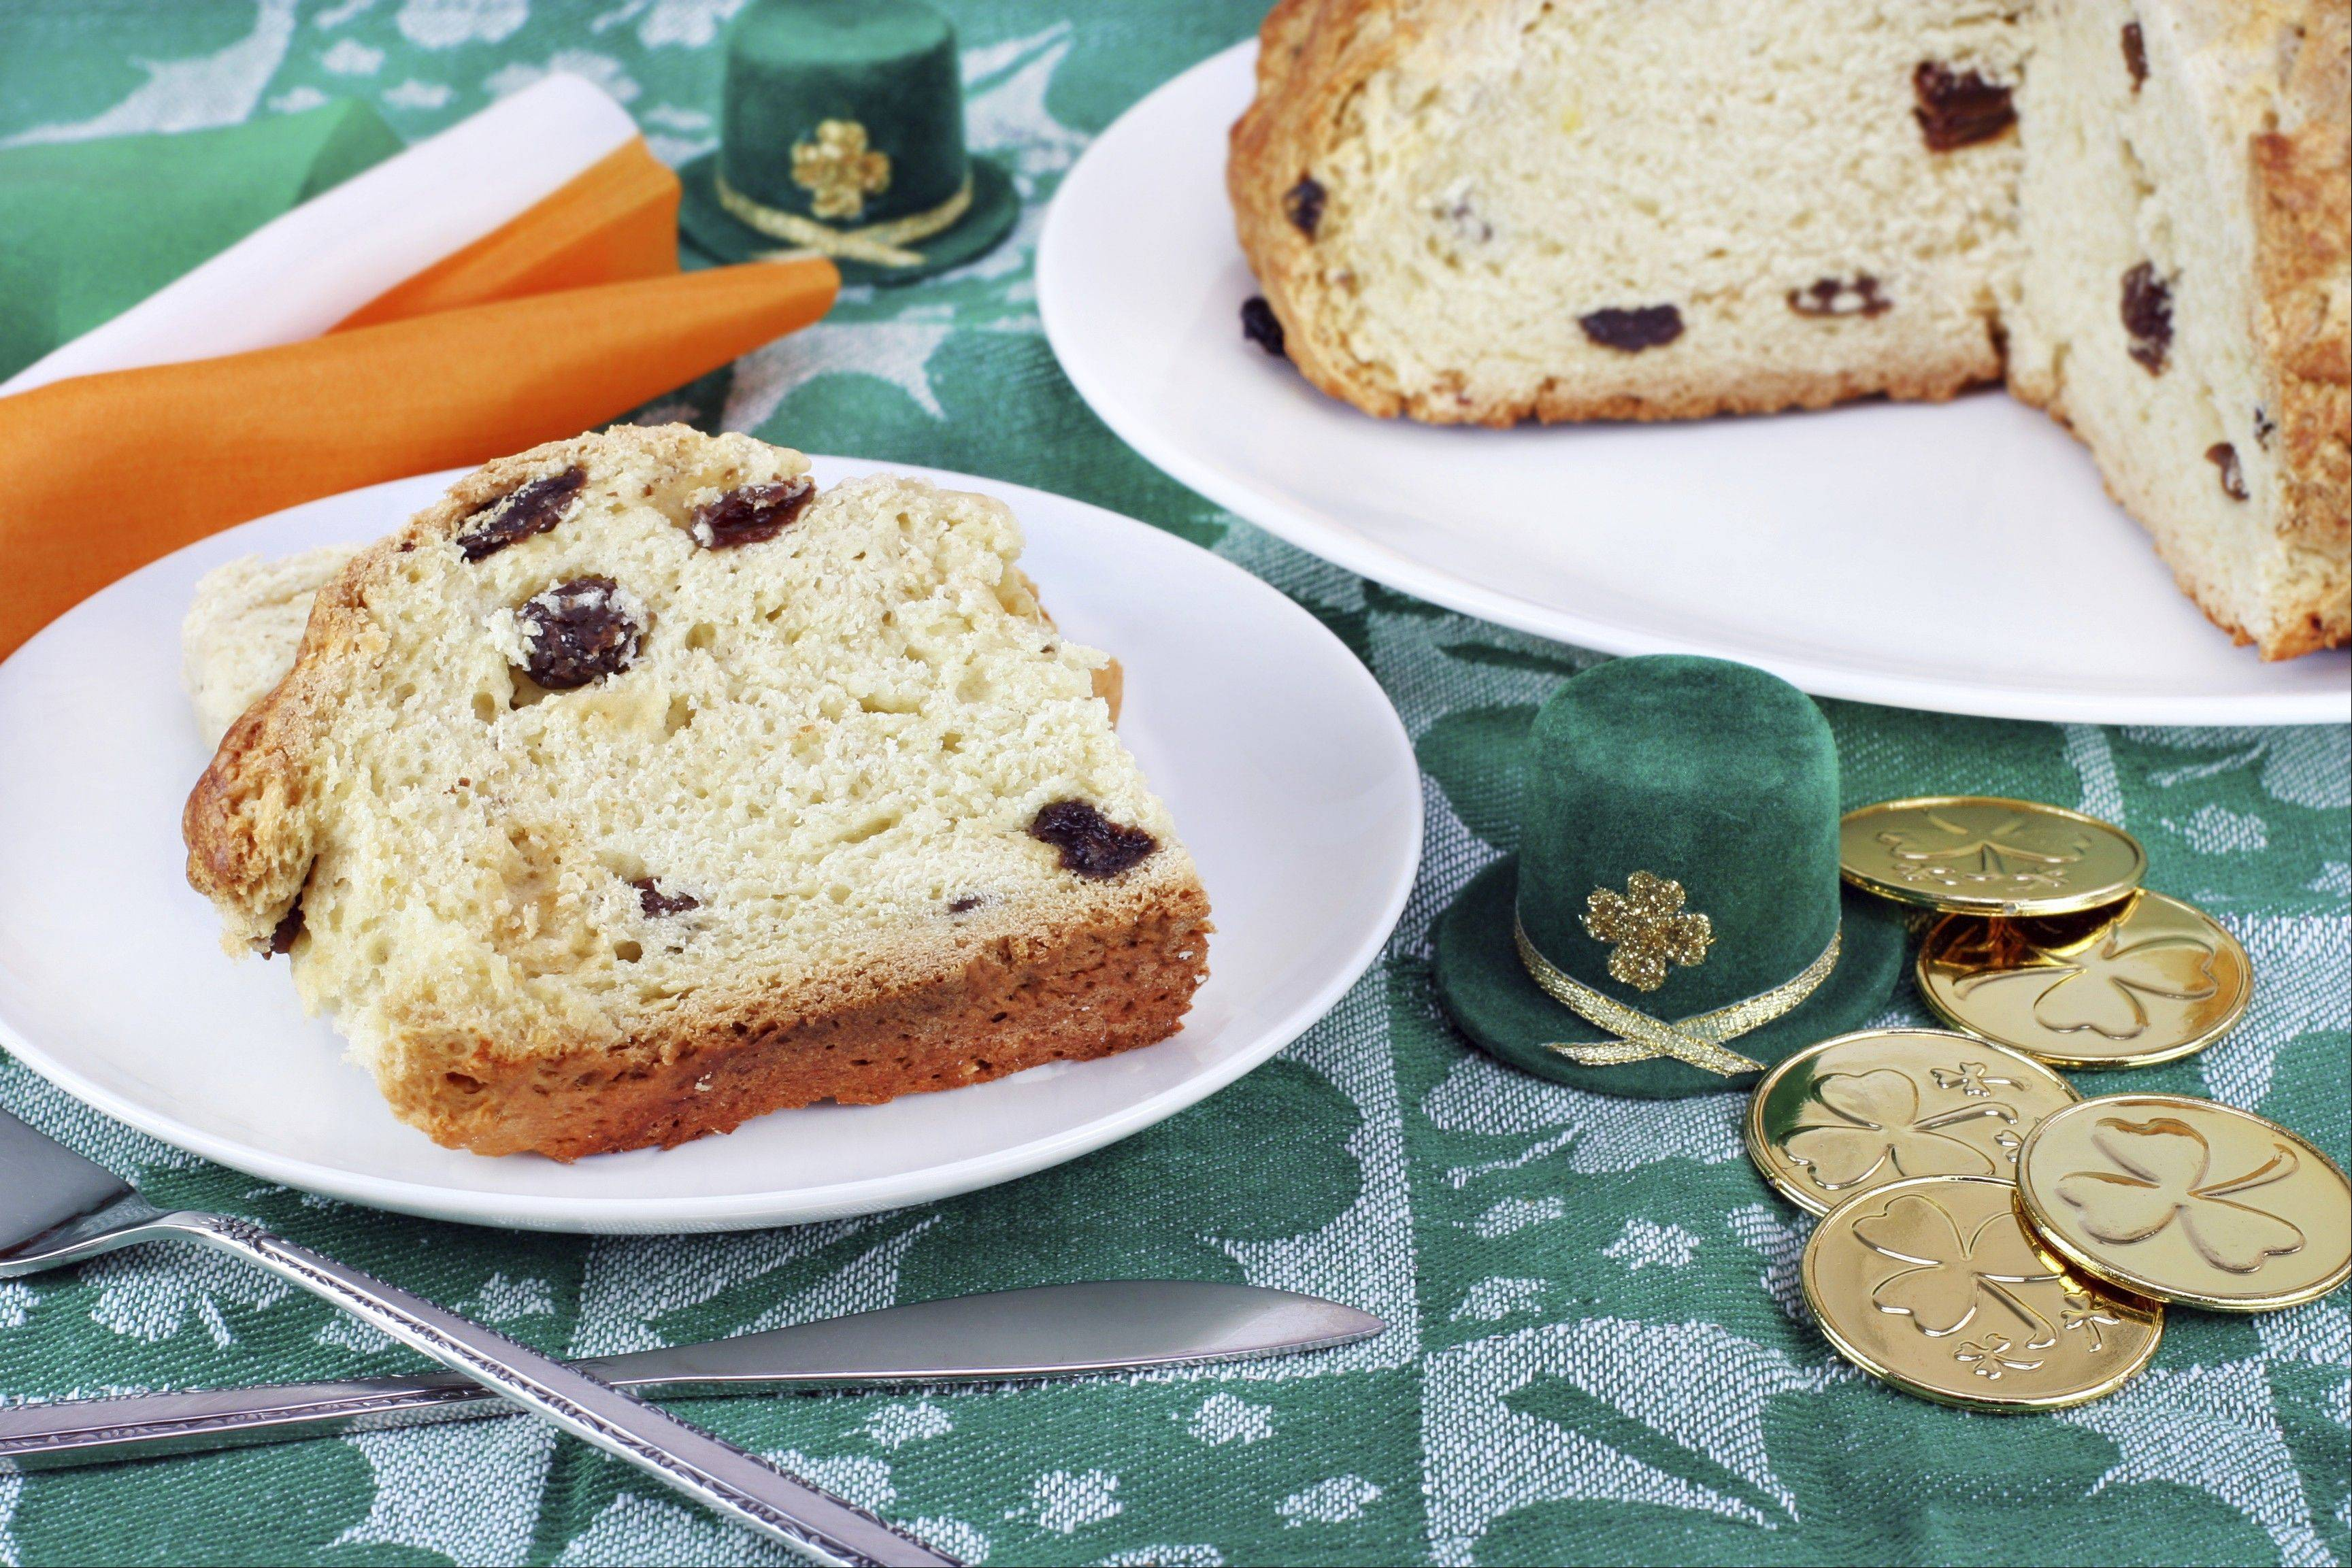 Enjoy Irish soda bread for St. Patrick's Day.